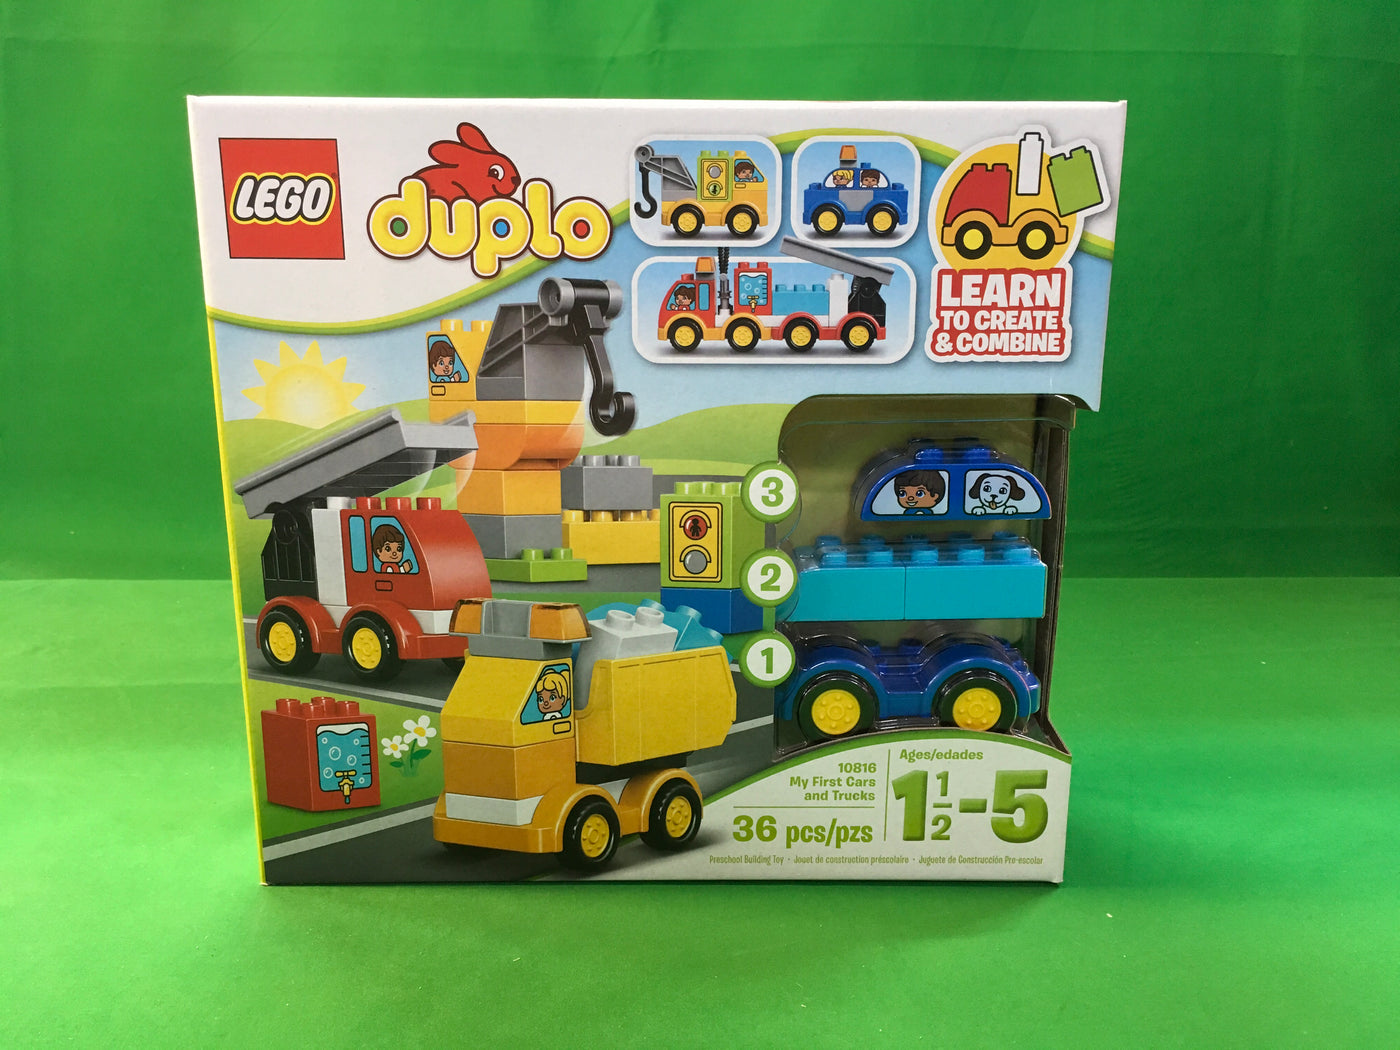 Lego 10816 - DUPLO My First - My First Cars and Trucks